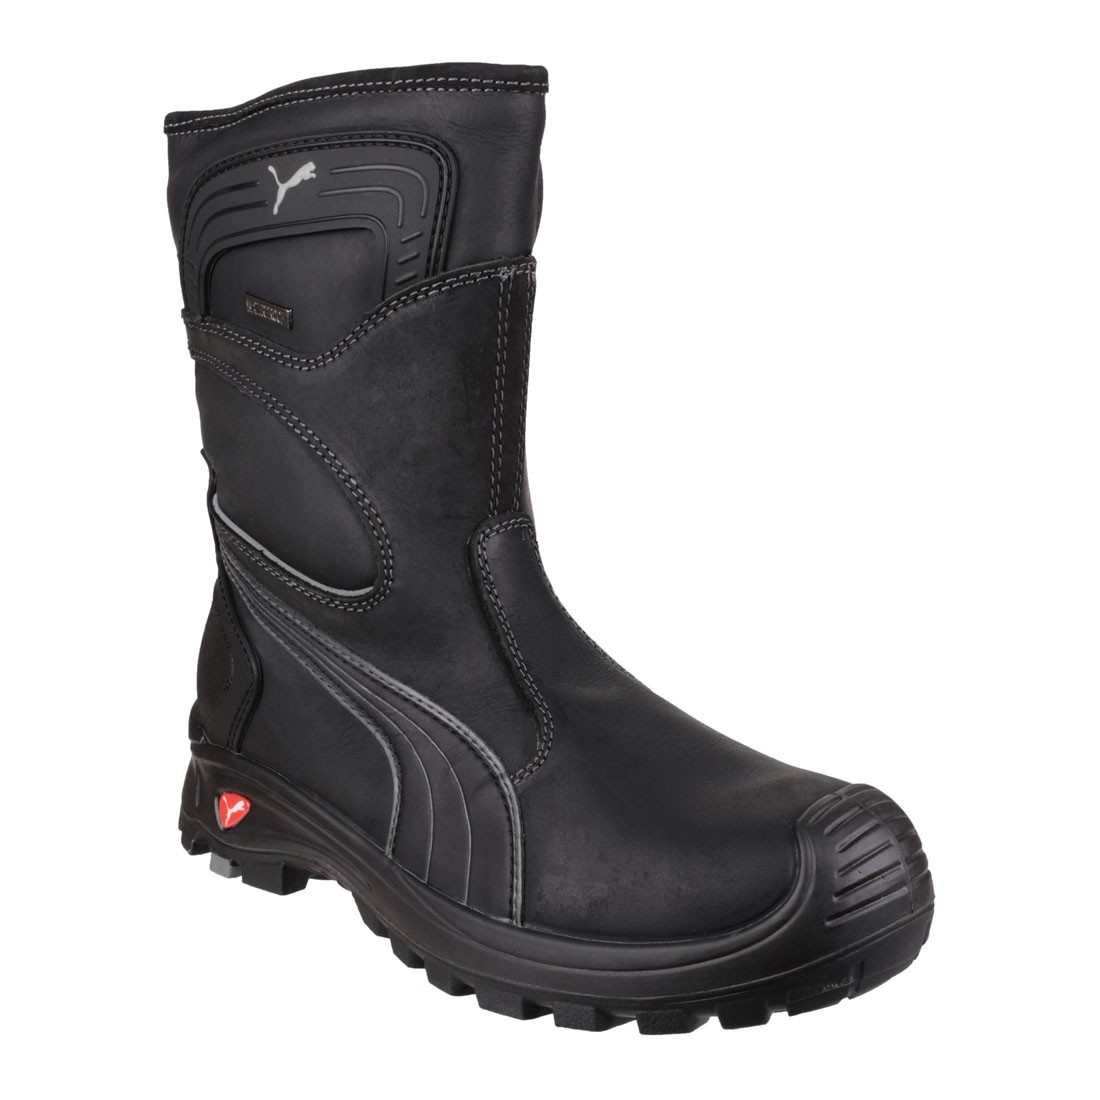 puma water resistant black leather metal free mens safety